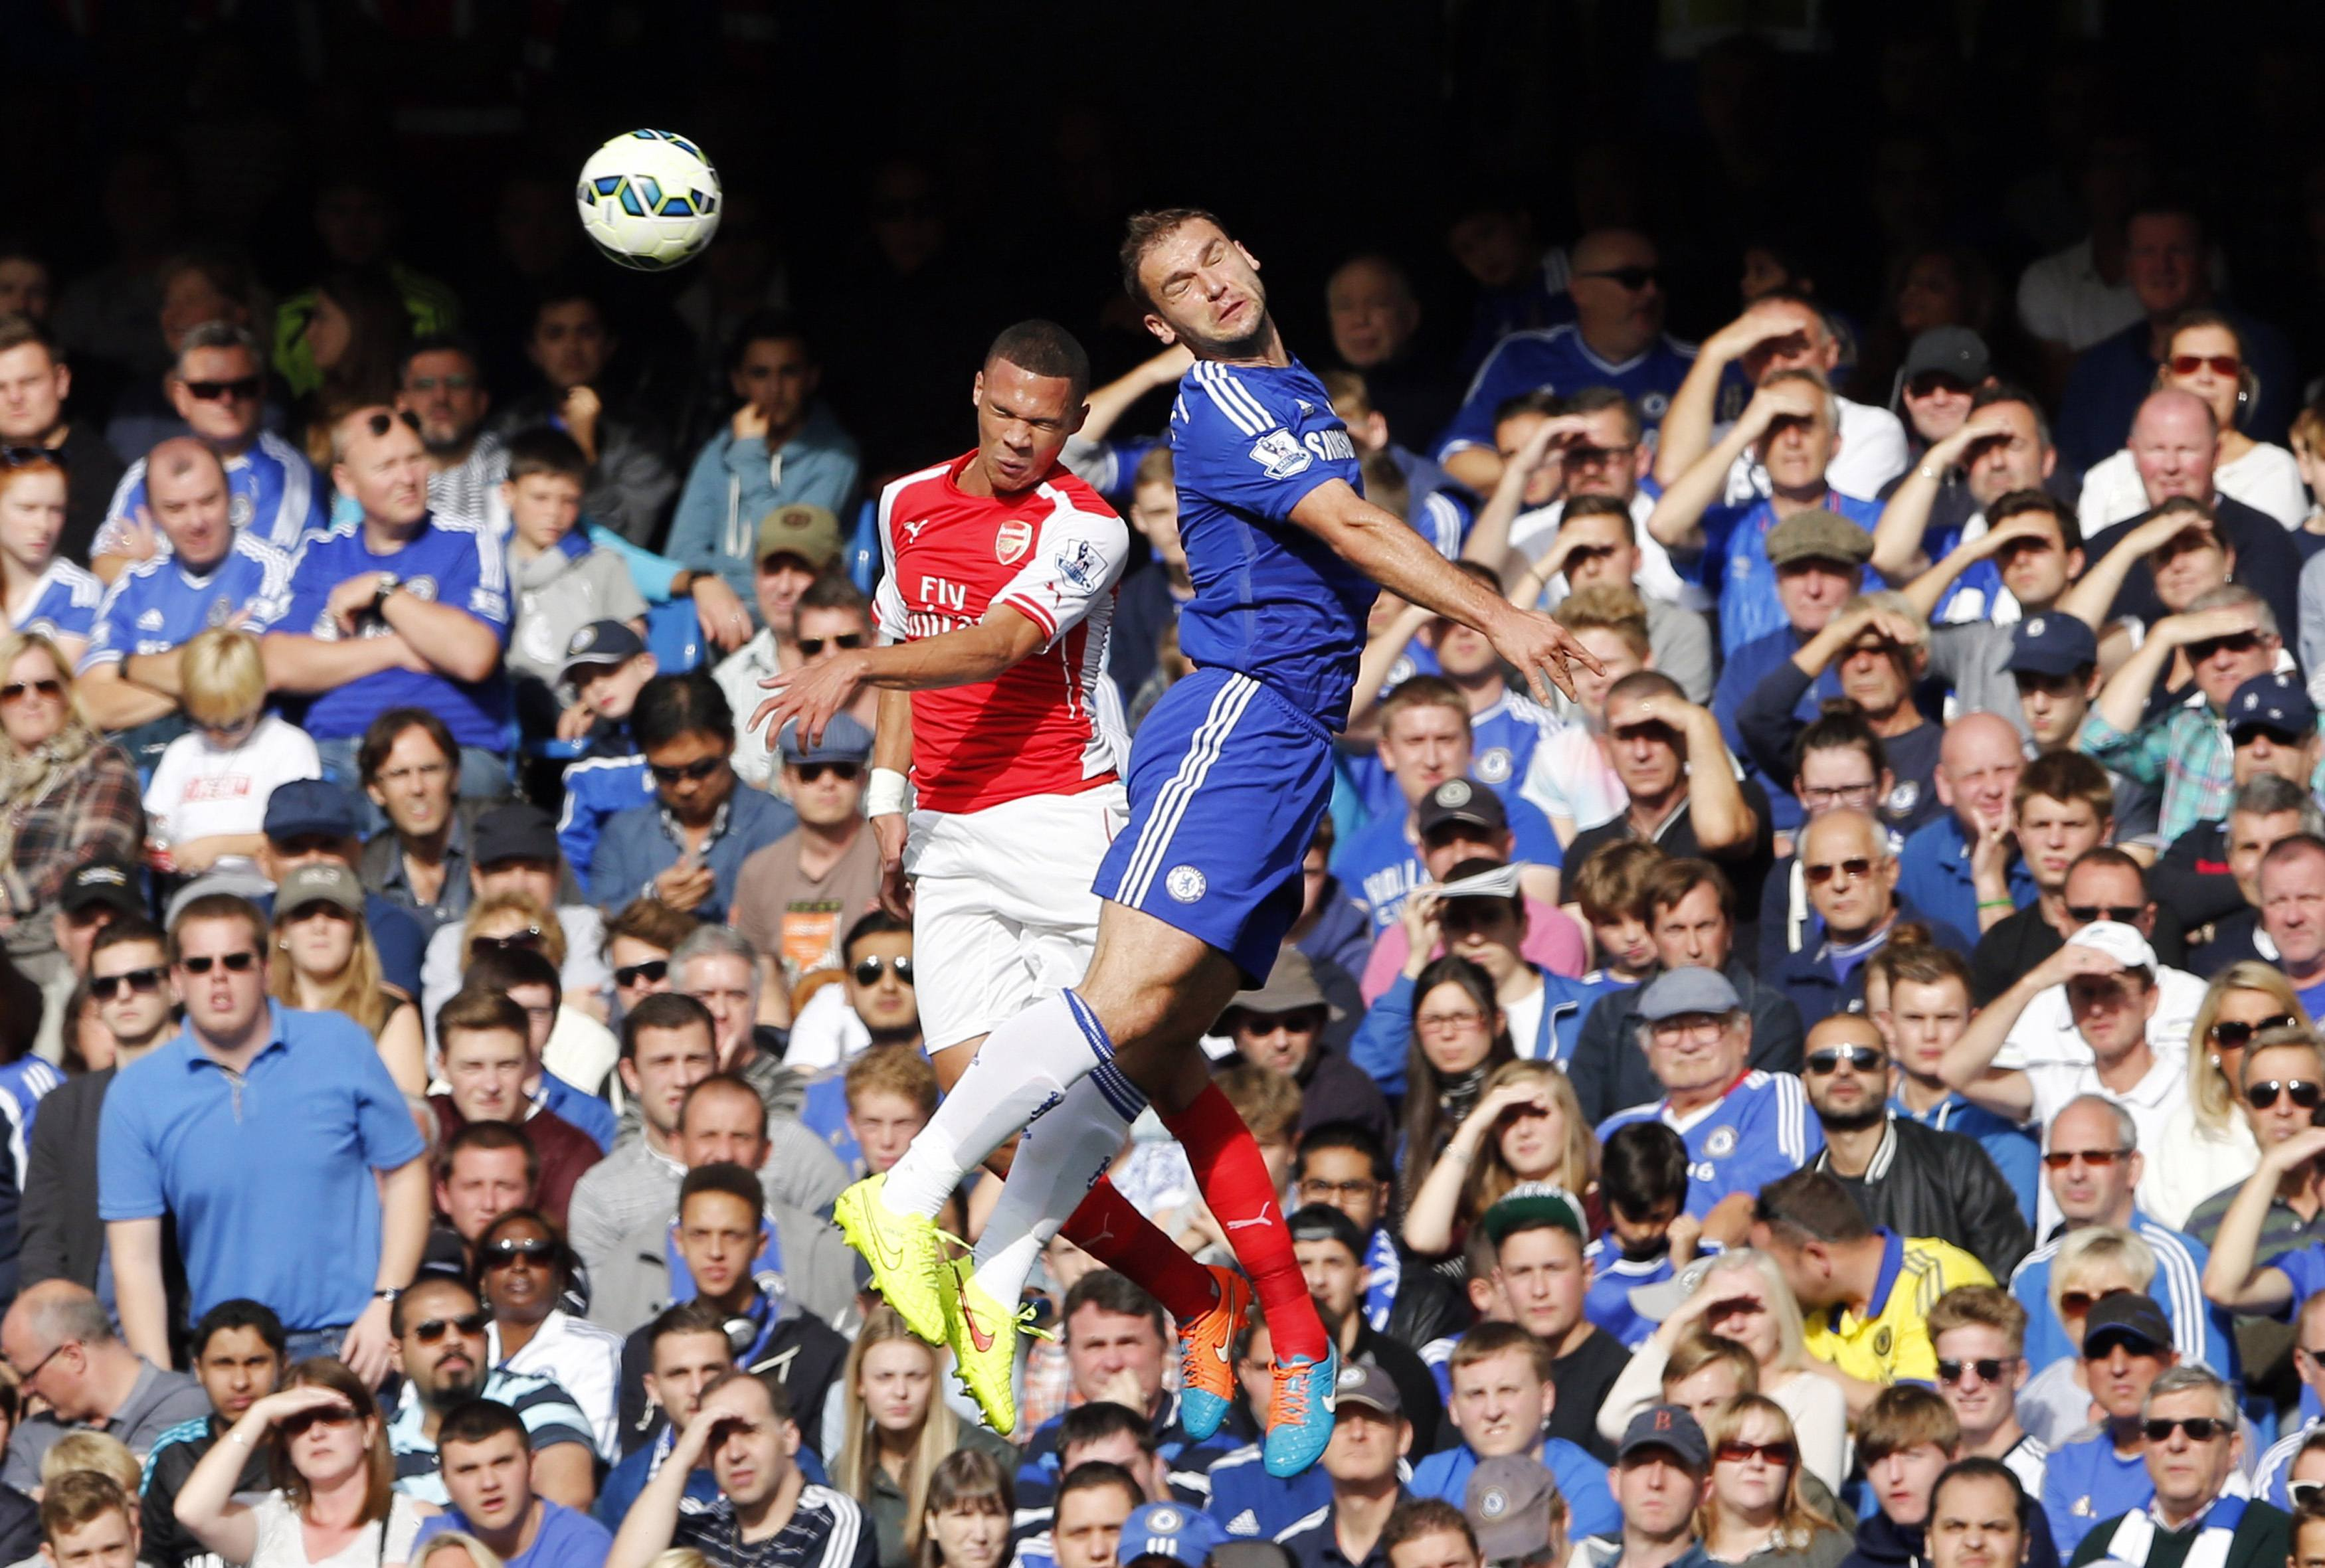 "REFILE - CORRECTING BYLINE Chelsea's Branislav Ivanovic (R) challenges Arsenal's Kieran Gibbs during their English Premier League soccer match at Stamford Bridge in London October 5, 2014. REUTERS/Stefan Wermuth (BRITAIN - Tags: SPORT SOCCER TPX IMAGES OF THE DAY) NO USE WITH UNAUTHORIZED AUDIO, VIDEO, DATA, FIXTURE LISTS, CLUB/LEAGUE LOGOS OR ""LIVE"" SERVICES. ONLINE IN-MATCH USE LIMITED TO 45 IMAGES, NO VIDEO EMULATION. NO USE IN BETTING, GAMES OR SINGLE CLUB/LEAGUE/PLAYER PUBLICATIONS. FOR EDITORIAL USE ONLY. NOT FOR SALE FOR MARKETING OR ADVERTISING CAMPAIGNS"